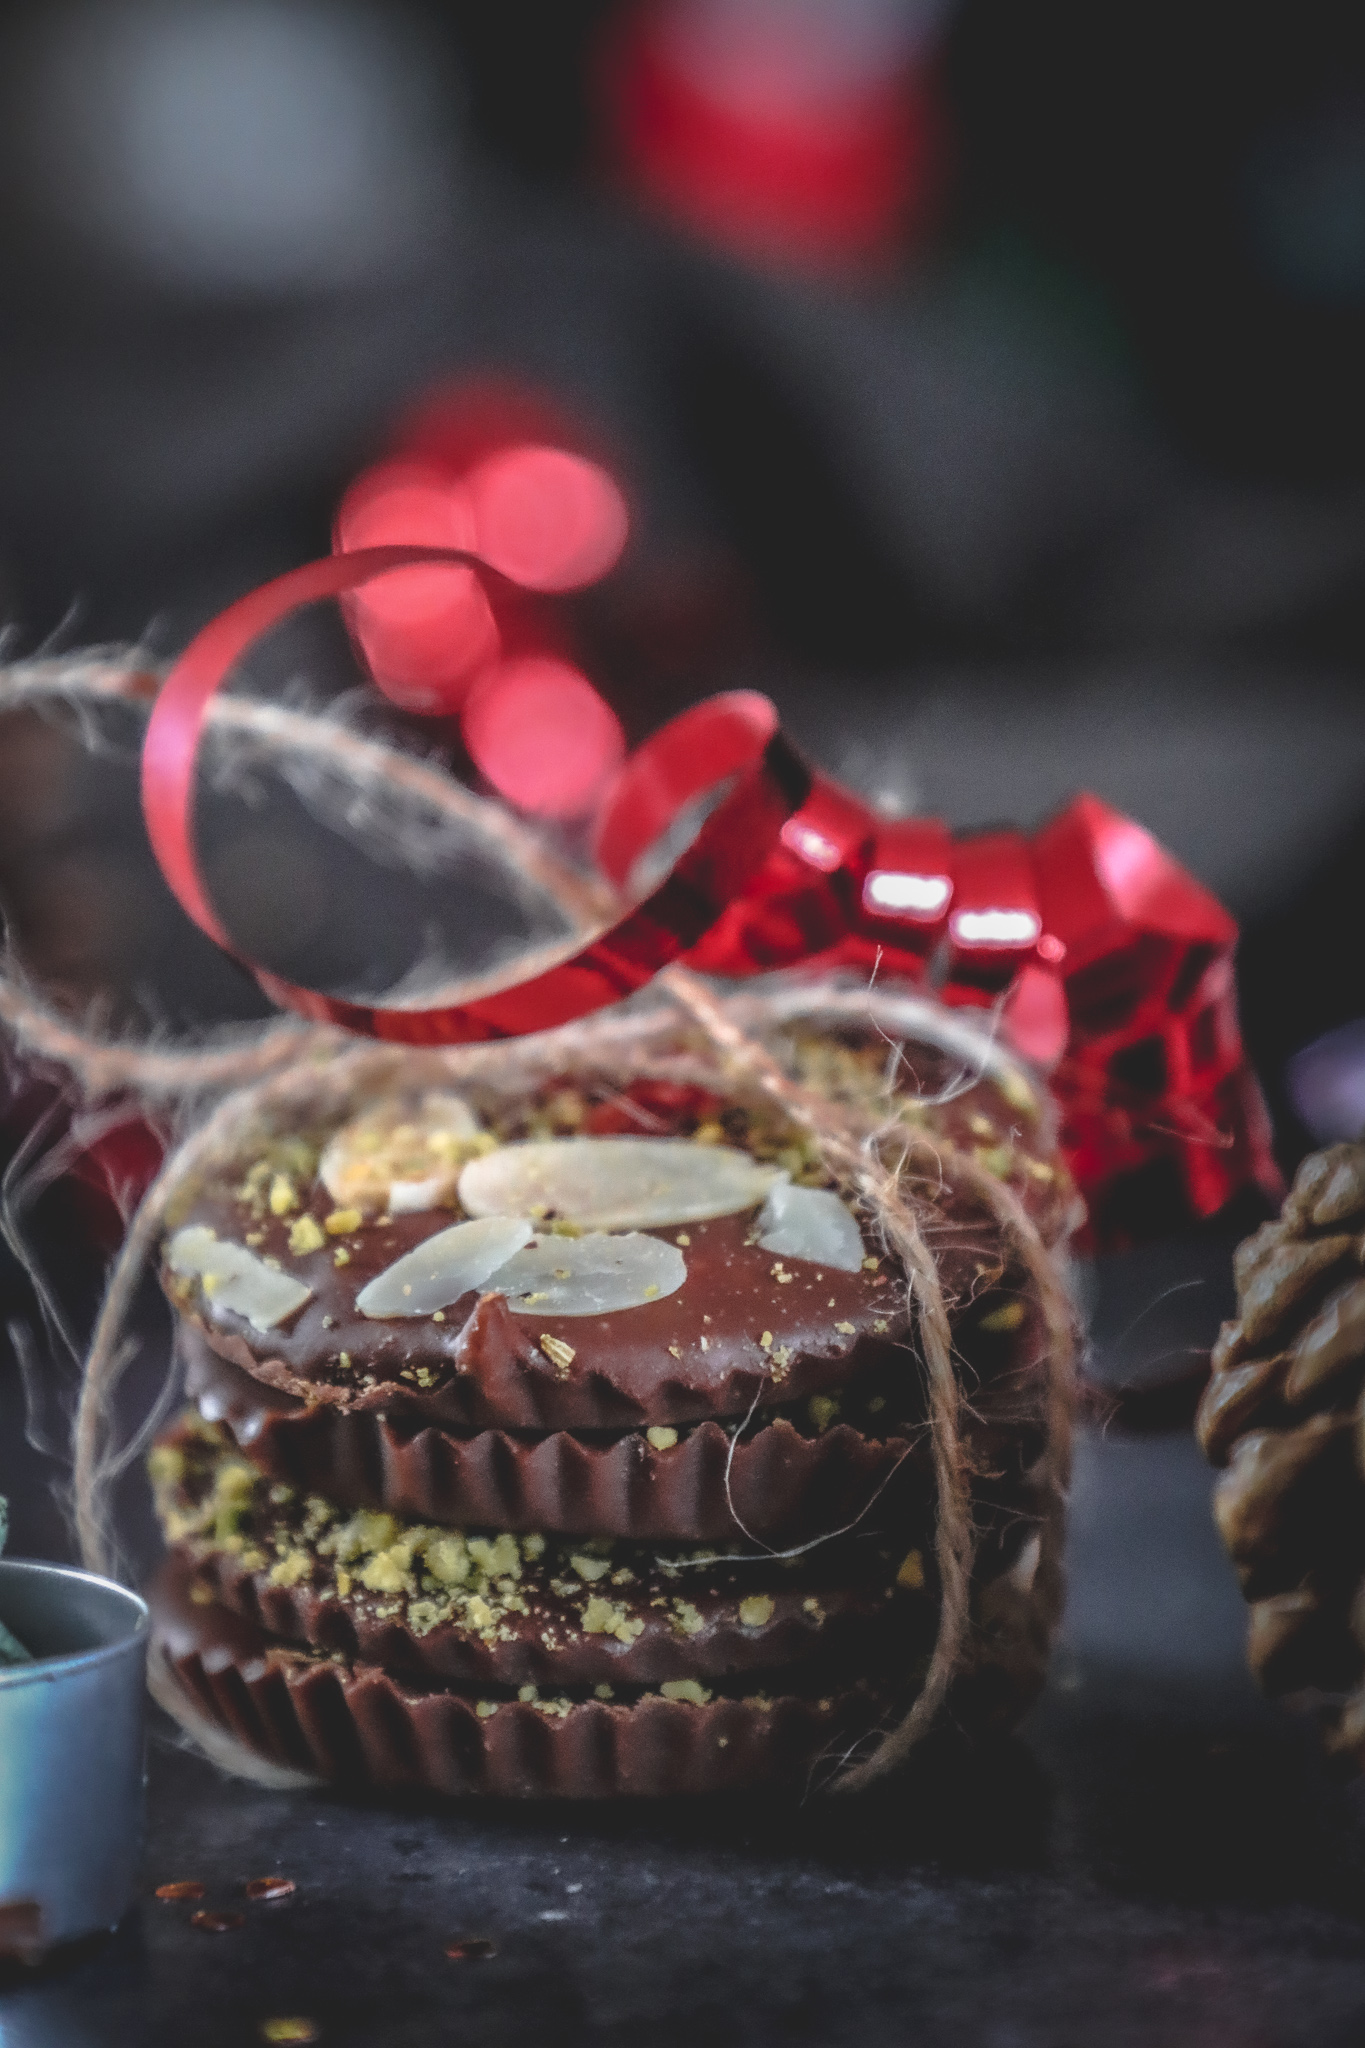 Chocolate discs gift wrapped